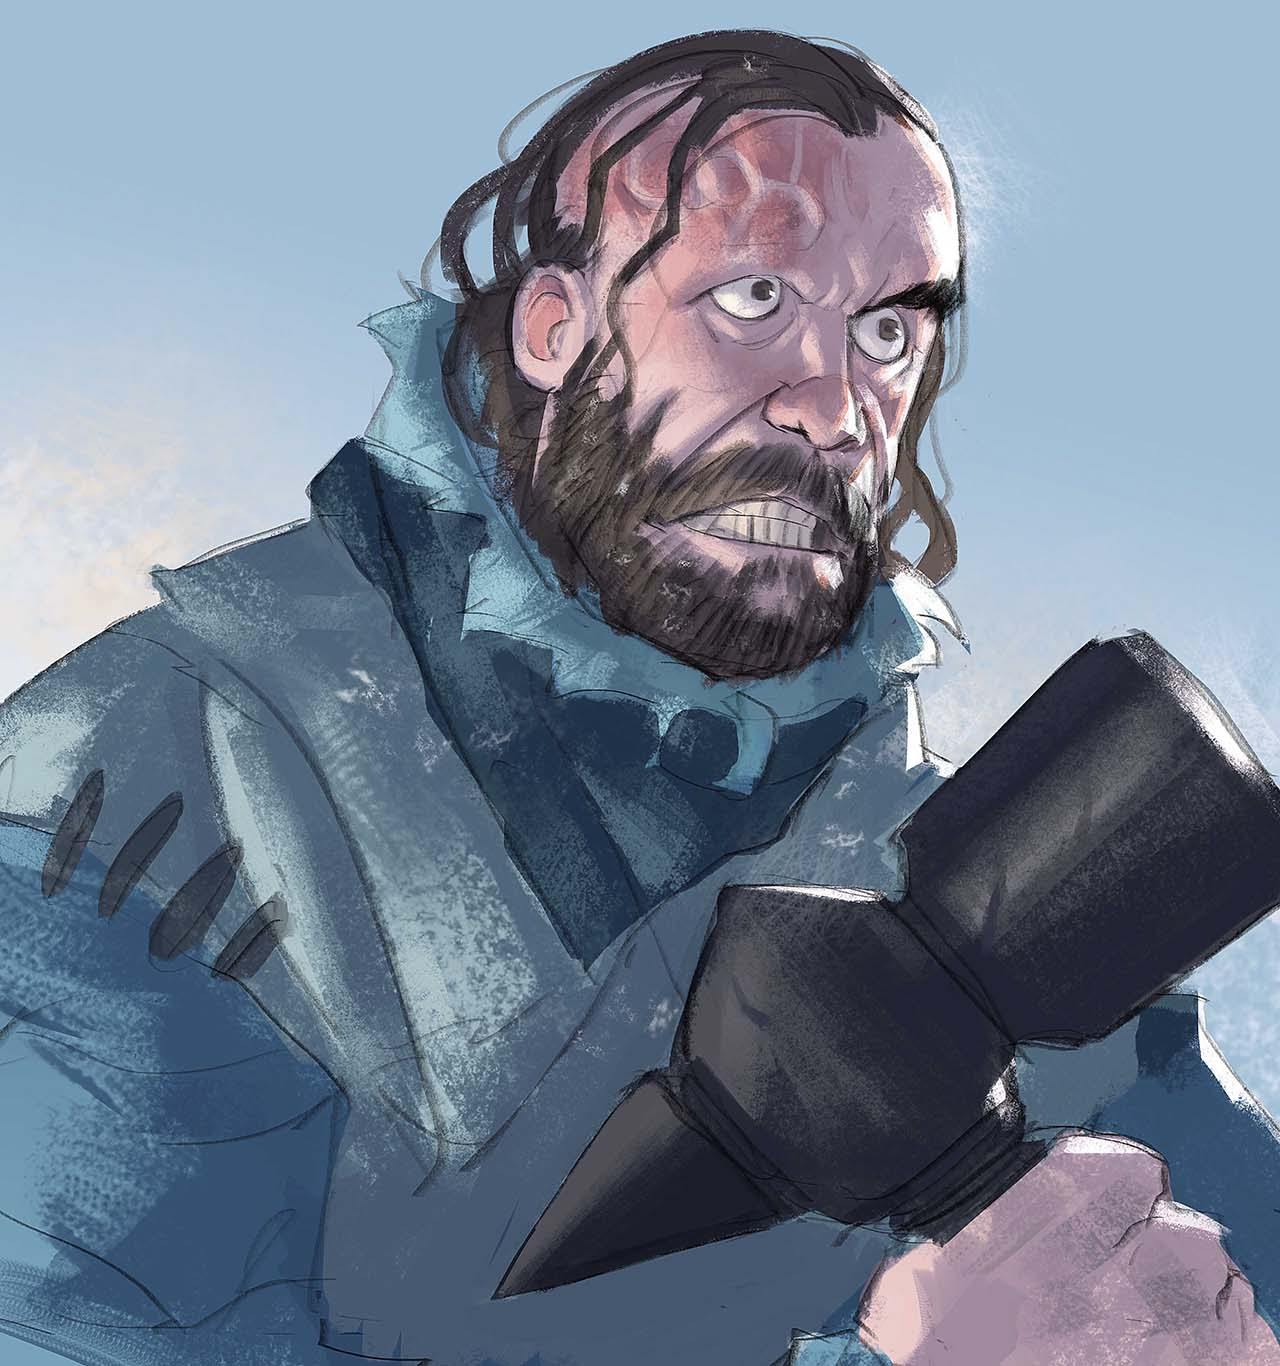 Artist Creates Unique Character Arts From Game Of Thrones – Sandor Clegane (Hound)Character Art By Ramón Nuñez